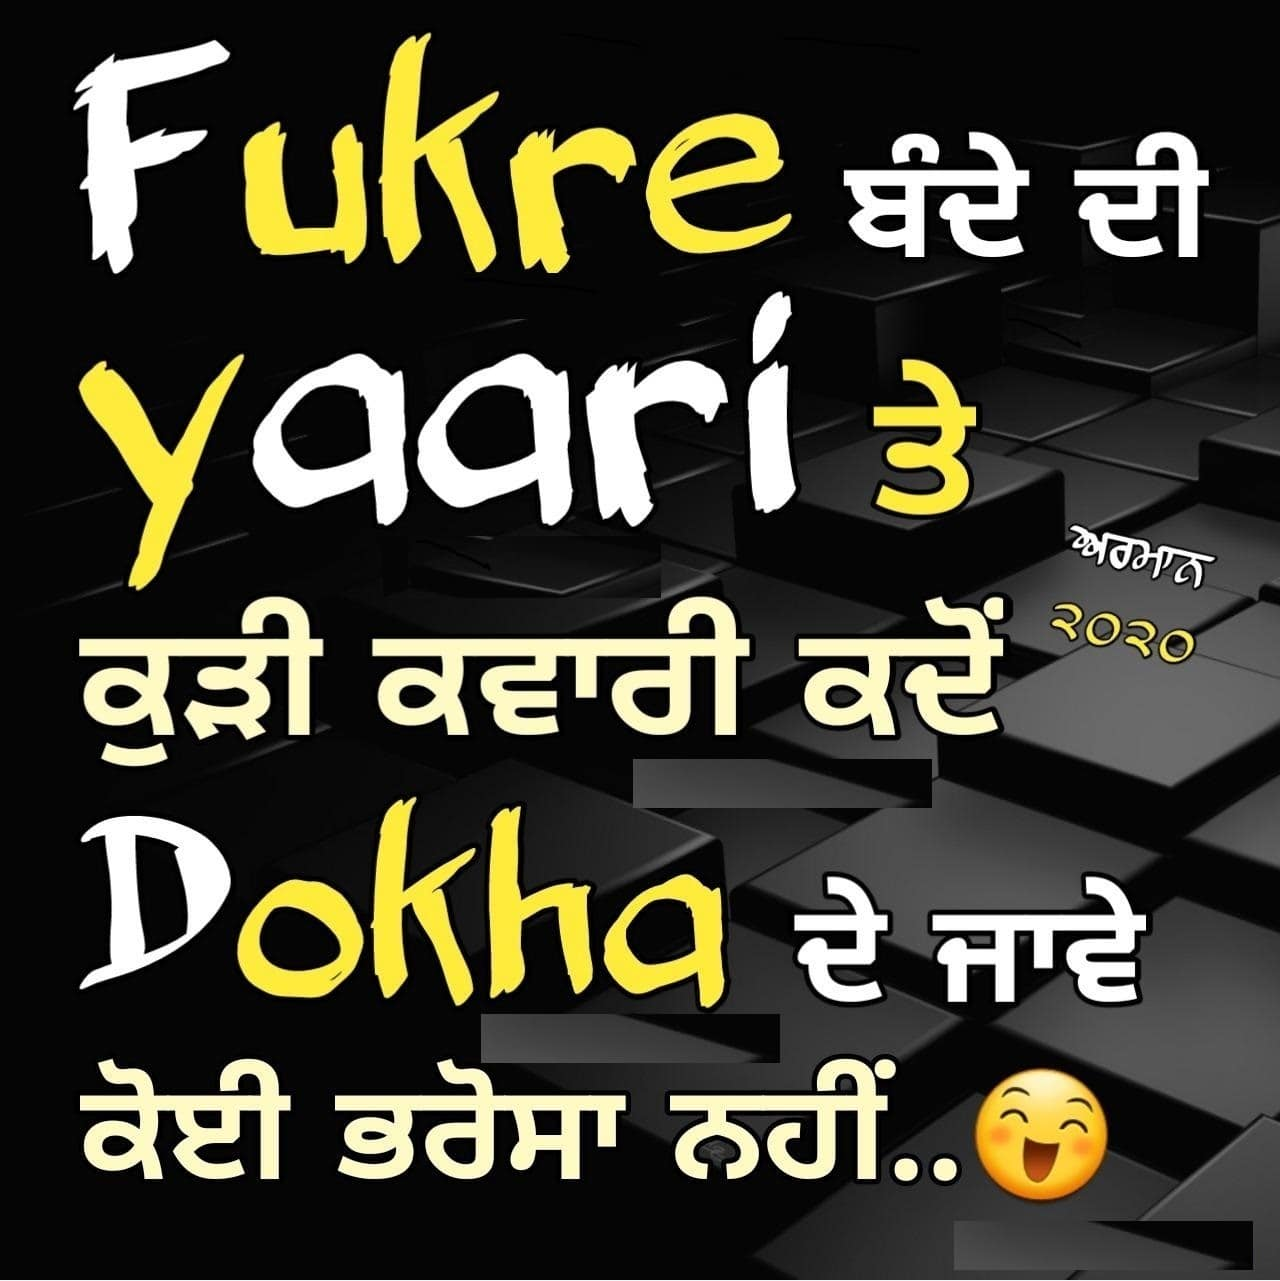 Top Viral Punjabi Yaari Status in 2019 - How Looks